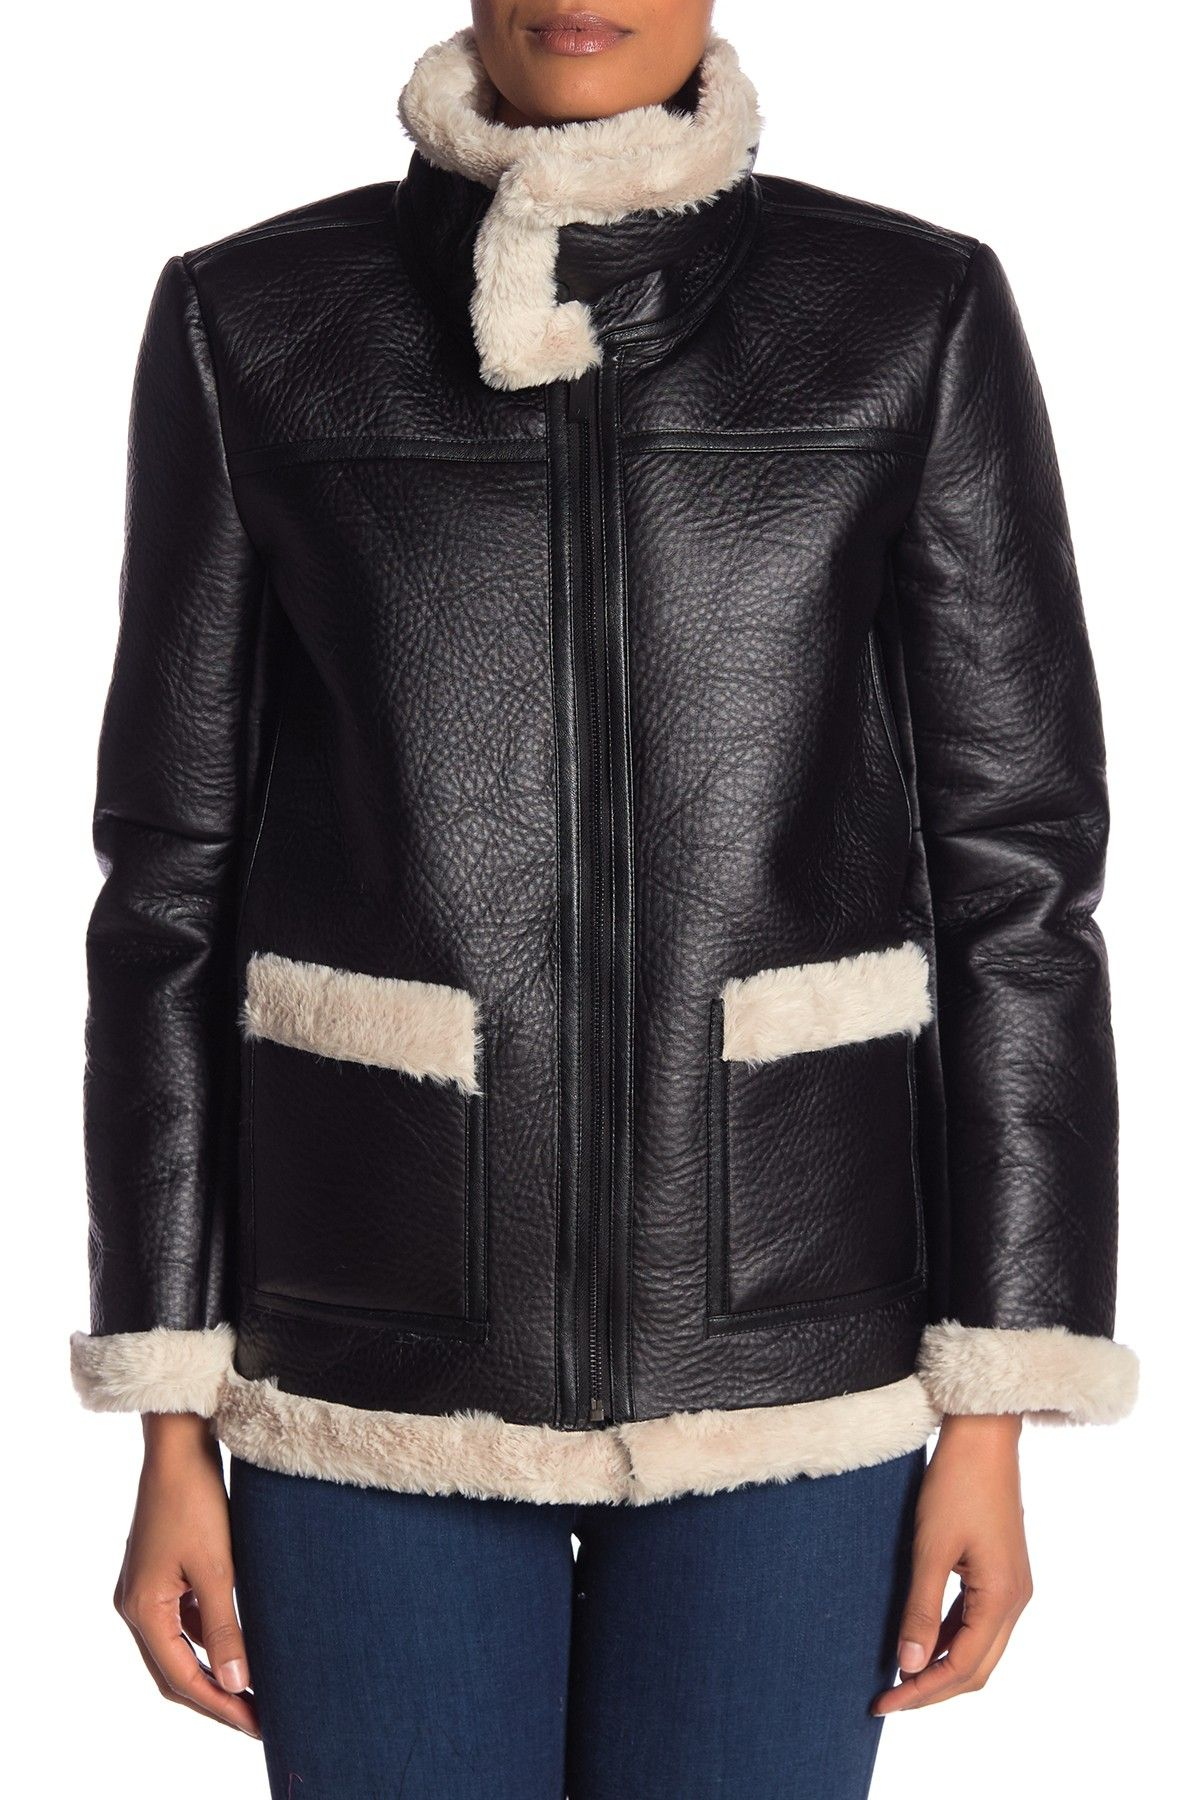 Vince Camuto Faux Leather Shearling Coat Nordstrom Rack Shearling Coat Faux Shearling Coat Shearling [ 1800 x 1200 Pixel ]